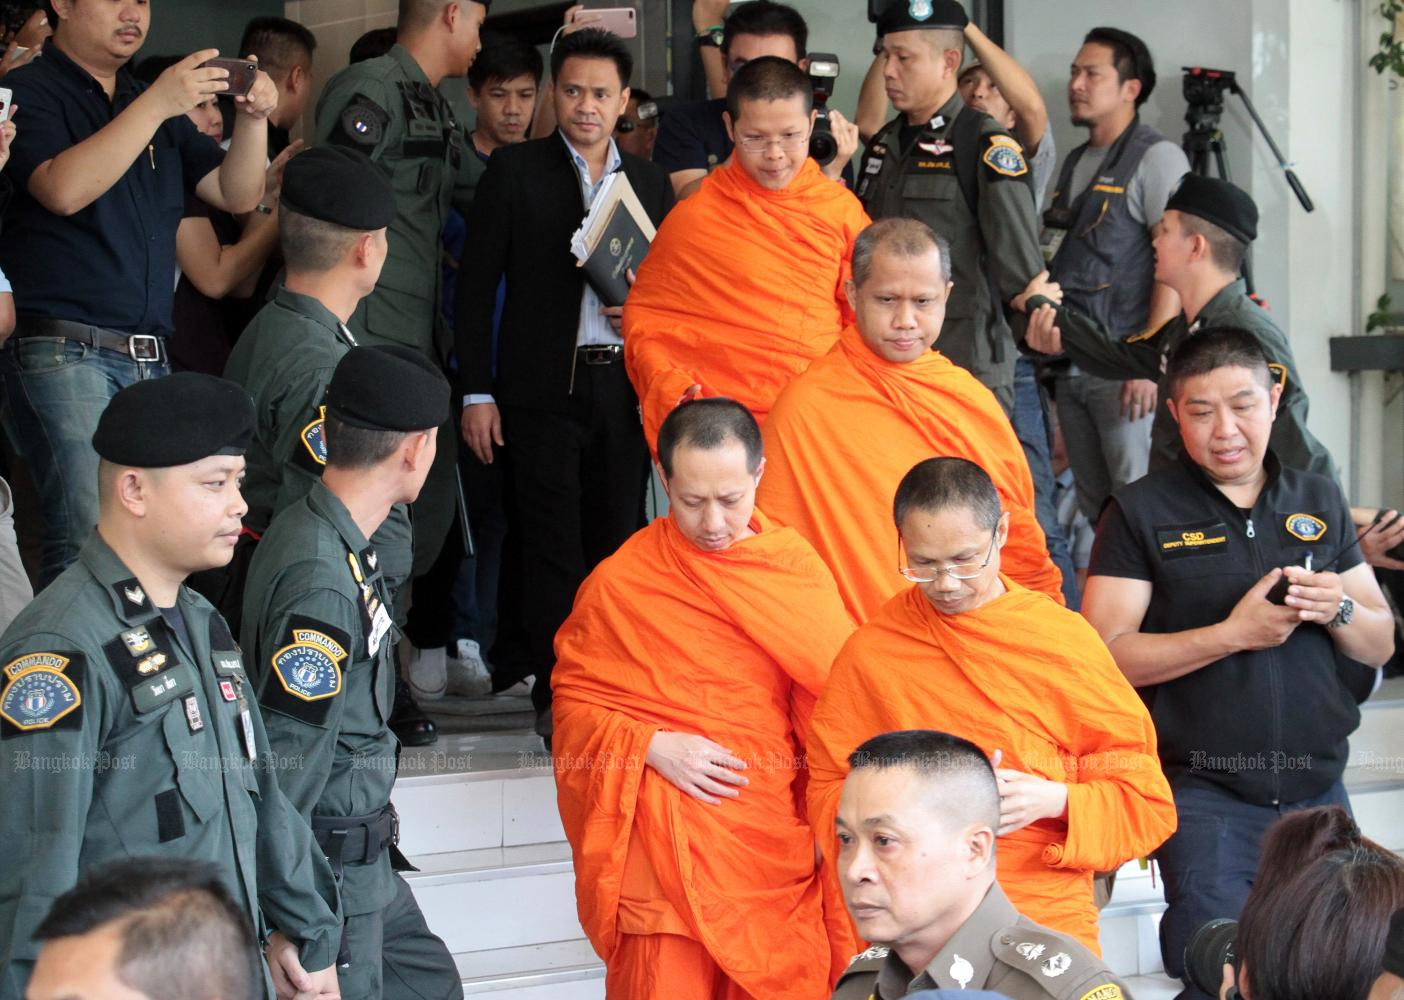 Senior monks from Wat Saket are summoned in 2018 to hear charges in connection with the temple fund embezzlement cases. Subsequently, five monks were disrobed and several given suspended jail terms.